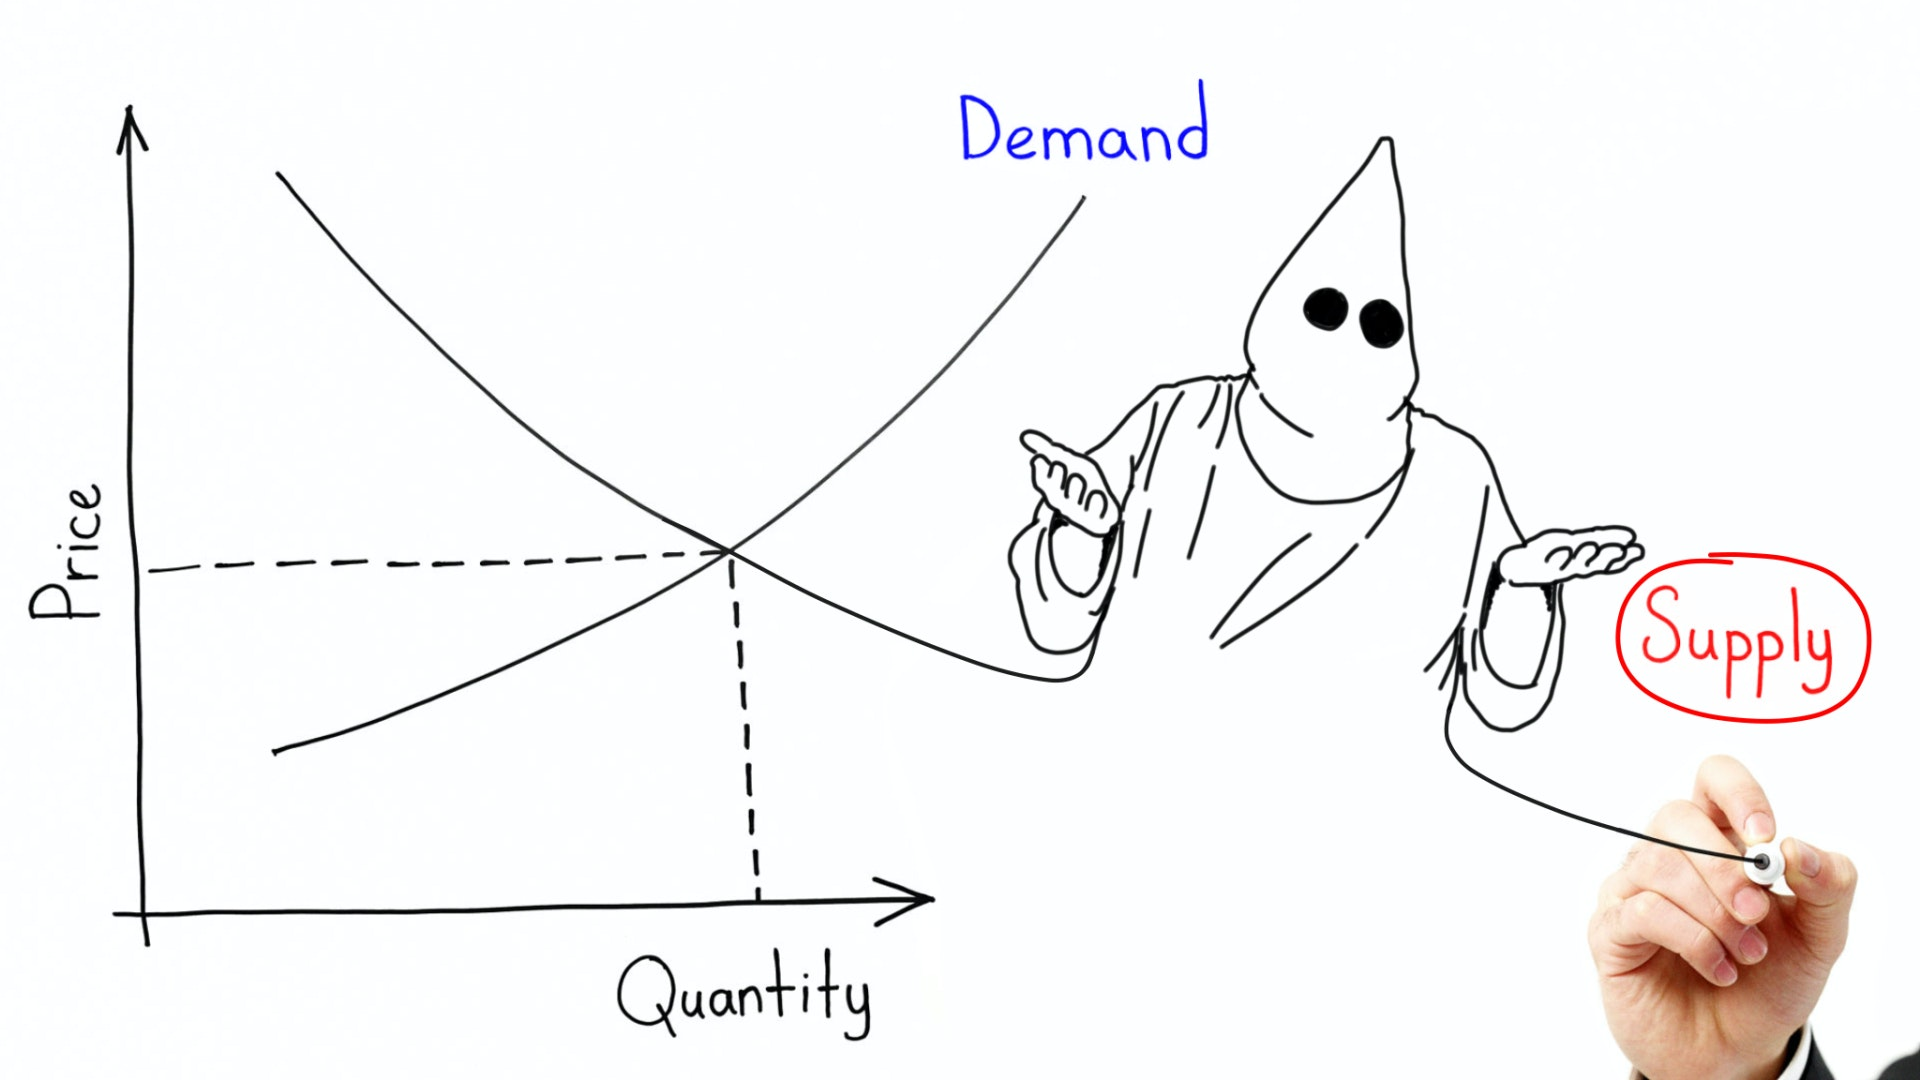 Ep. 1266 - When Demand For Racism Outstrips Supply